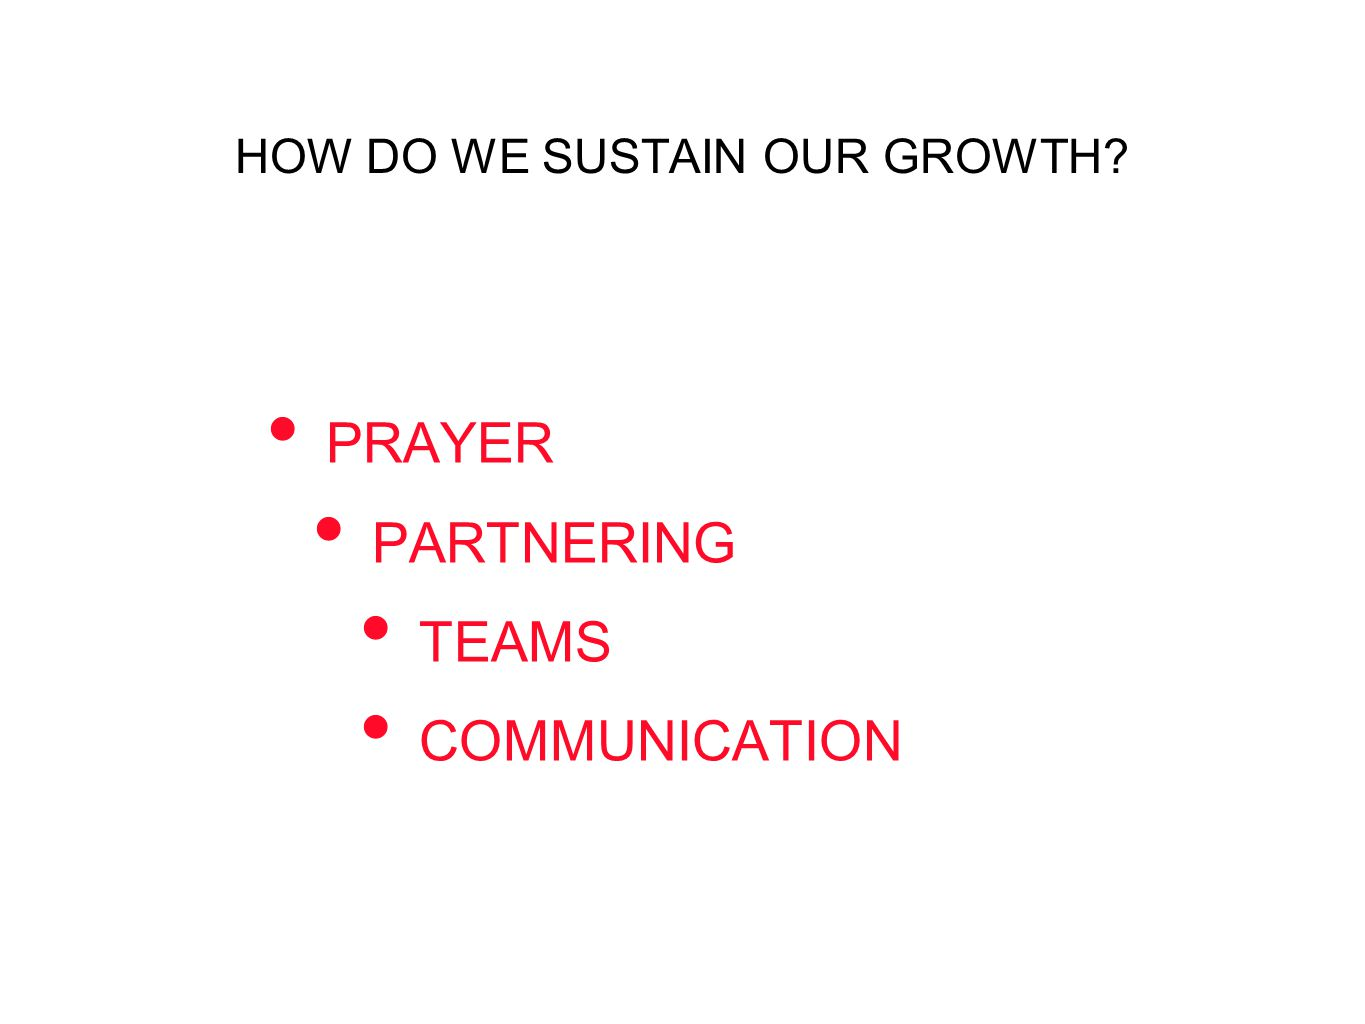 HOW DO WE SUSTAIN OUR GROWTH? PRAYER PARTNERING TEAMS COMMUNICATION